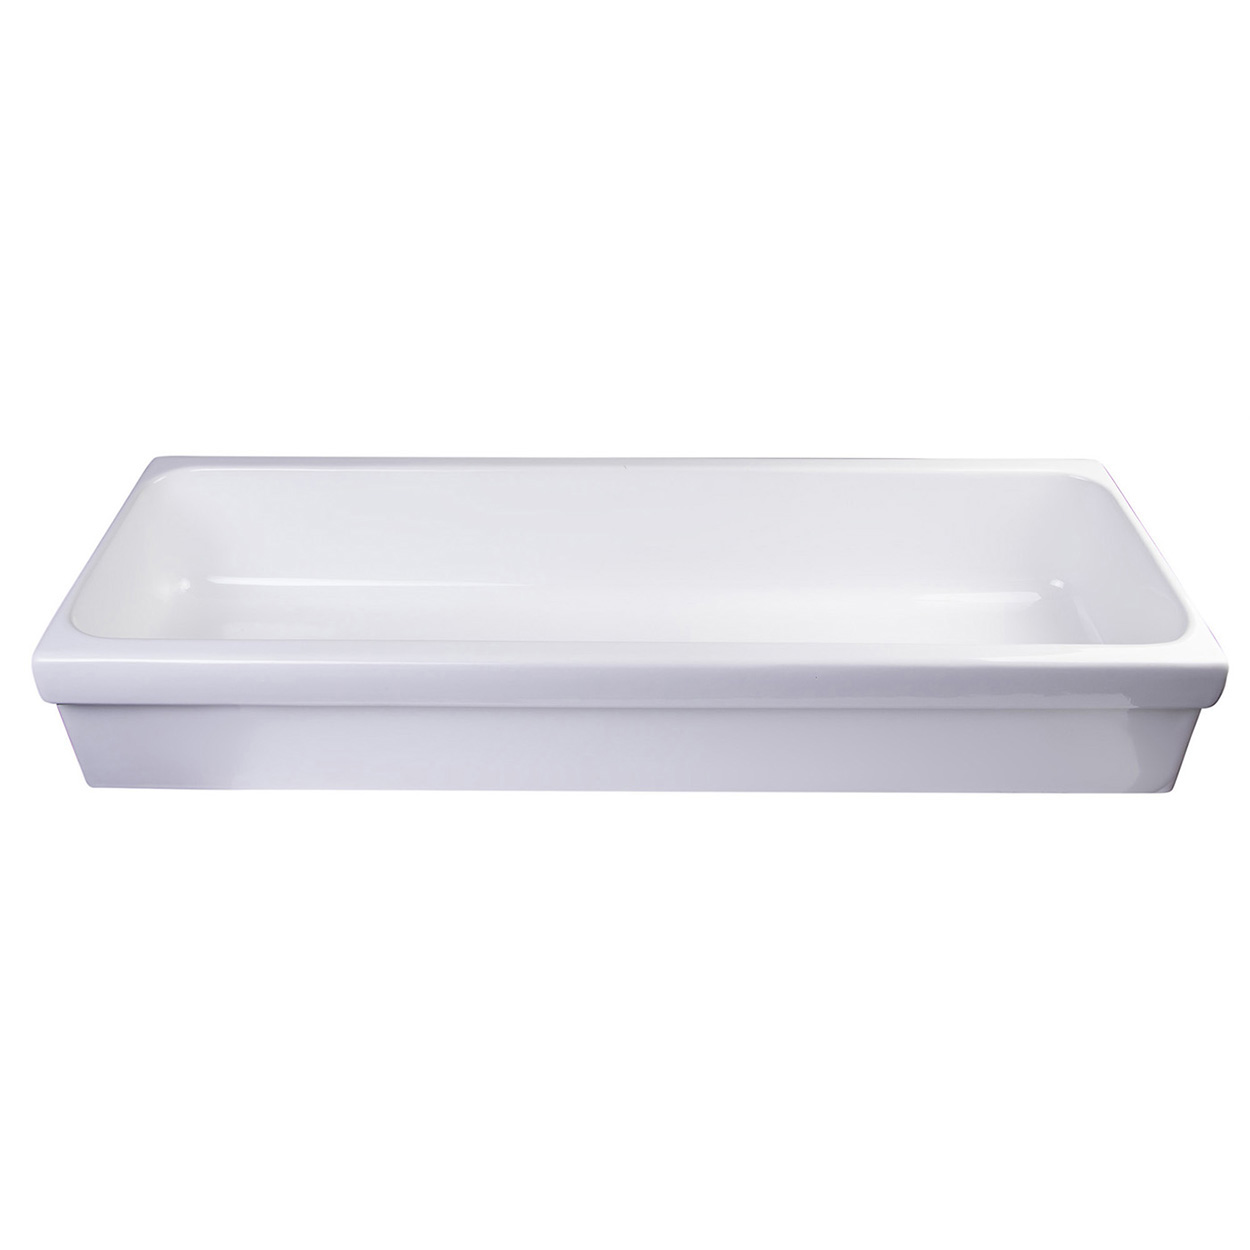 Bath4all Alfi Brand Ab48tr 48 White Above Mount Porcelain Bath Trough Sink